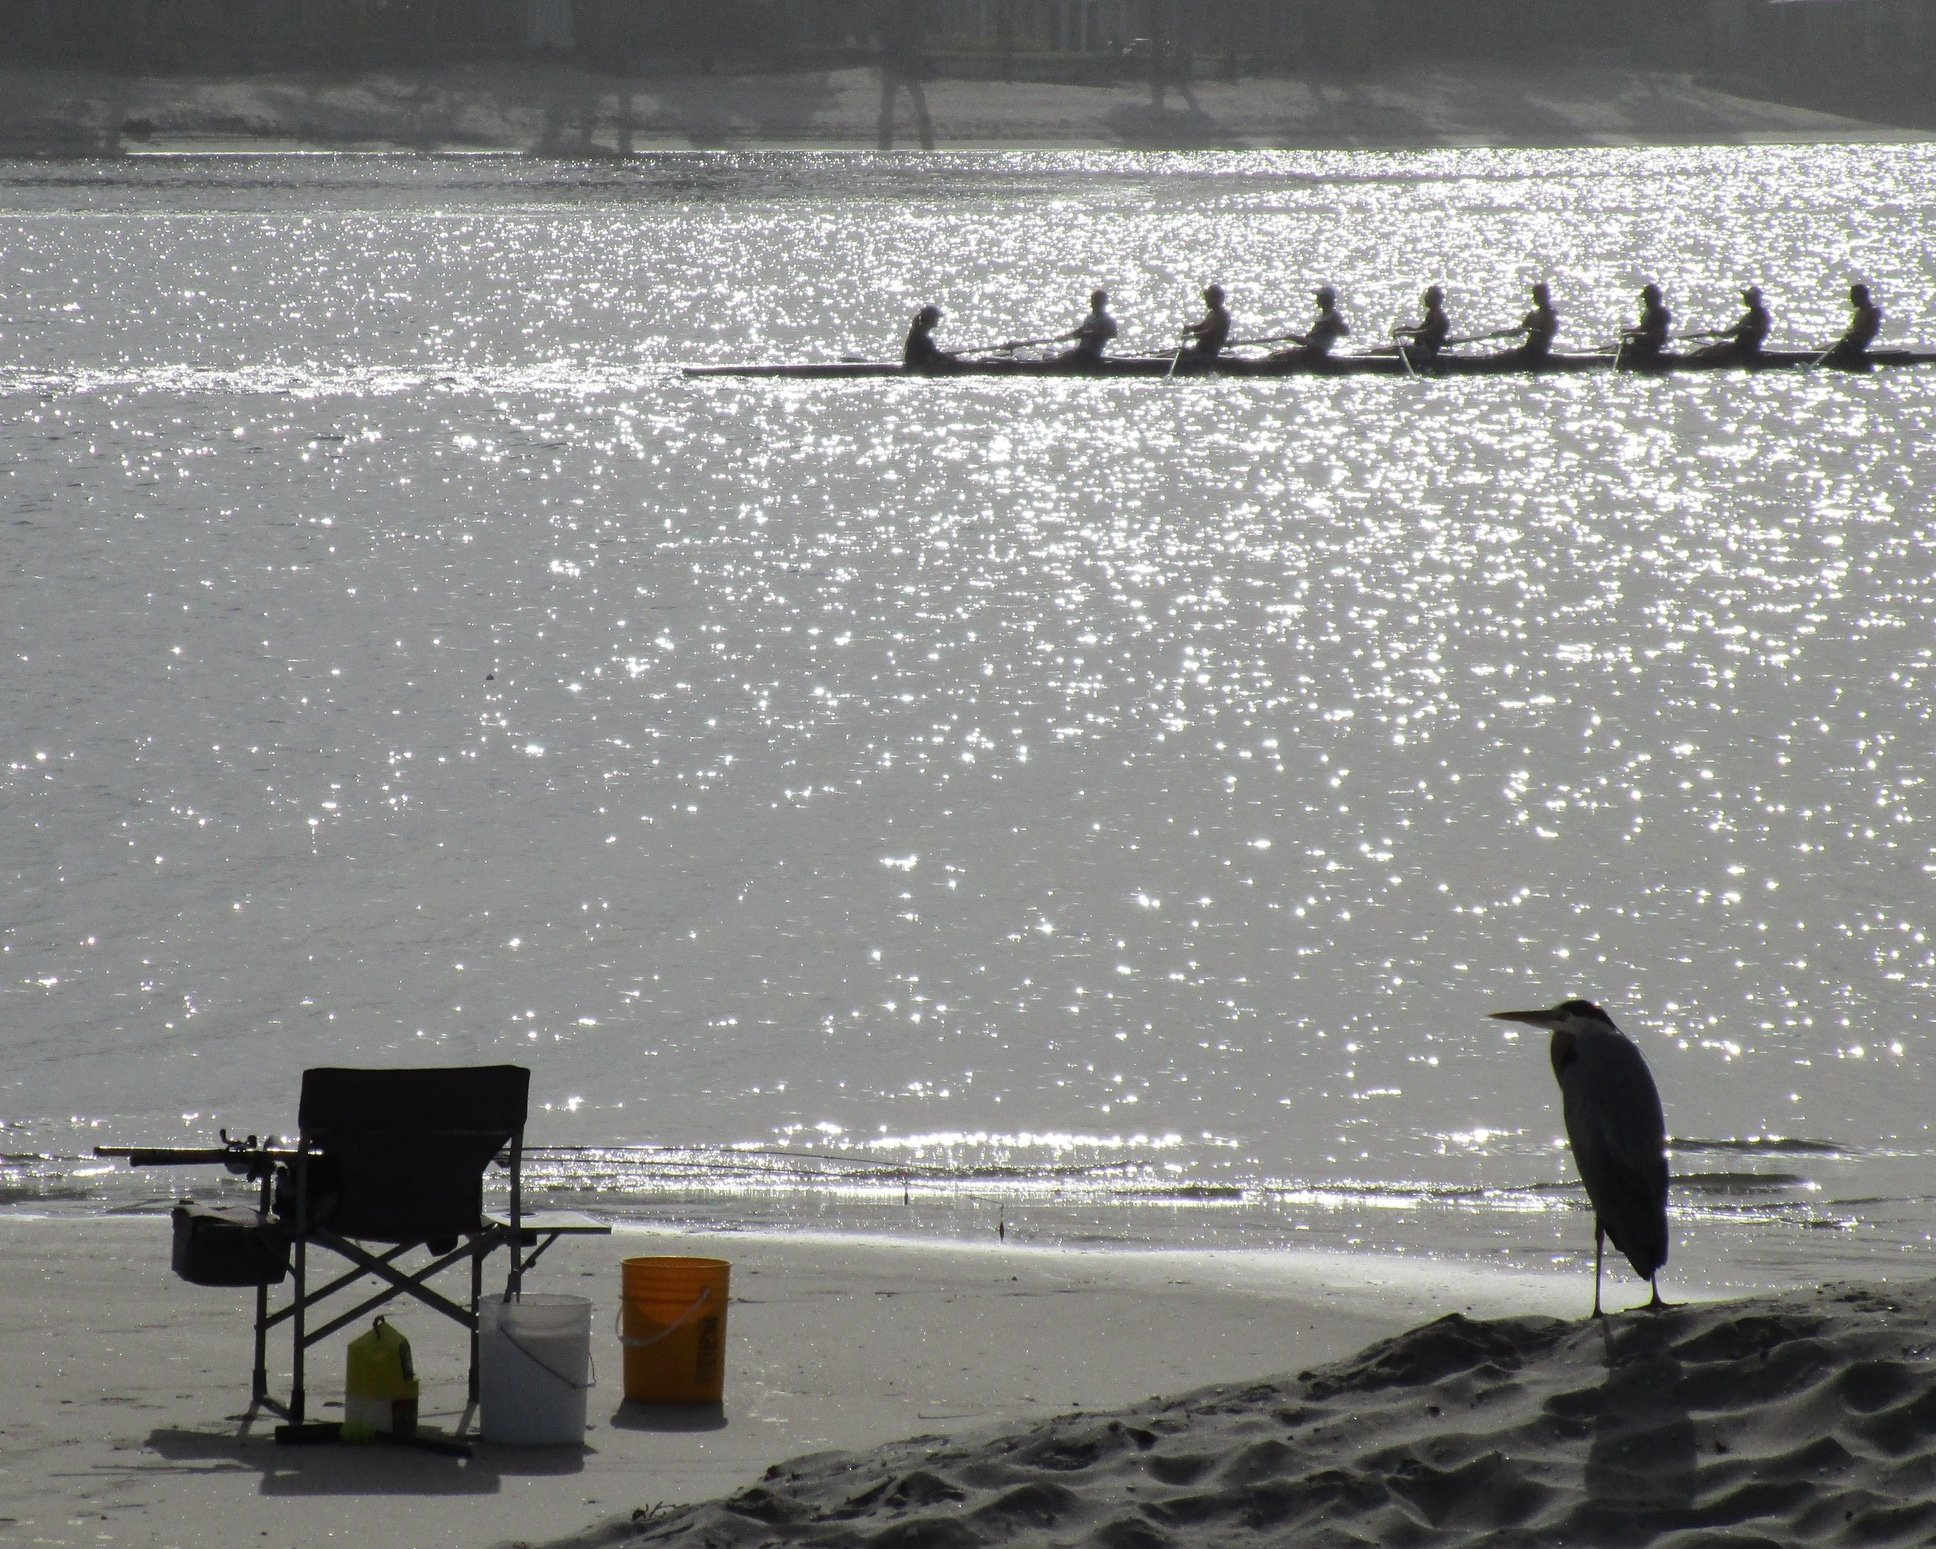 Rowing on Mission Bay San Diego